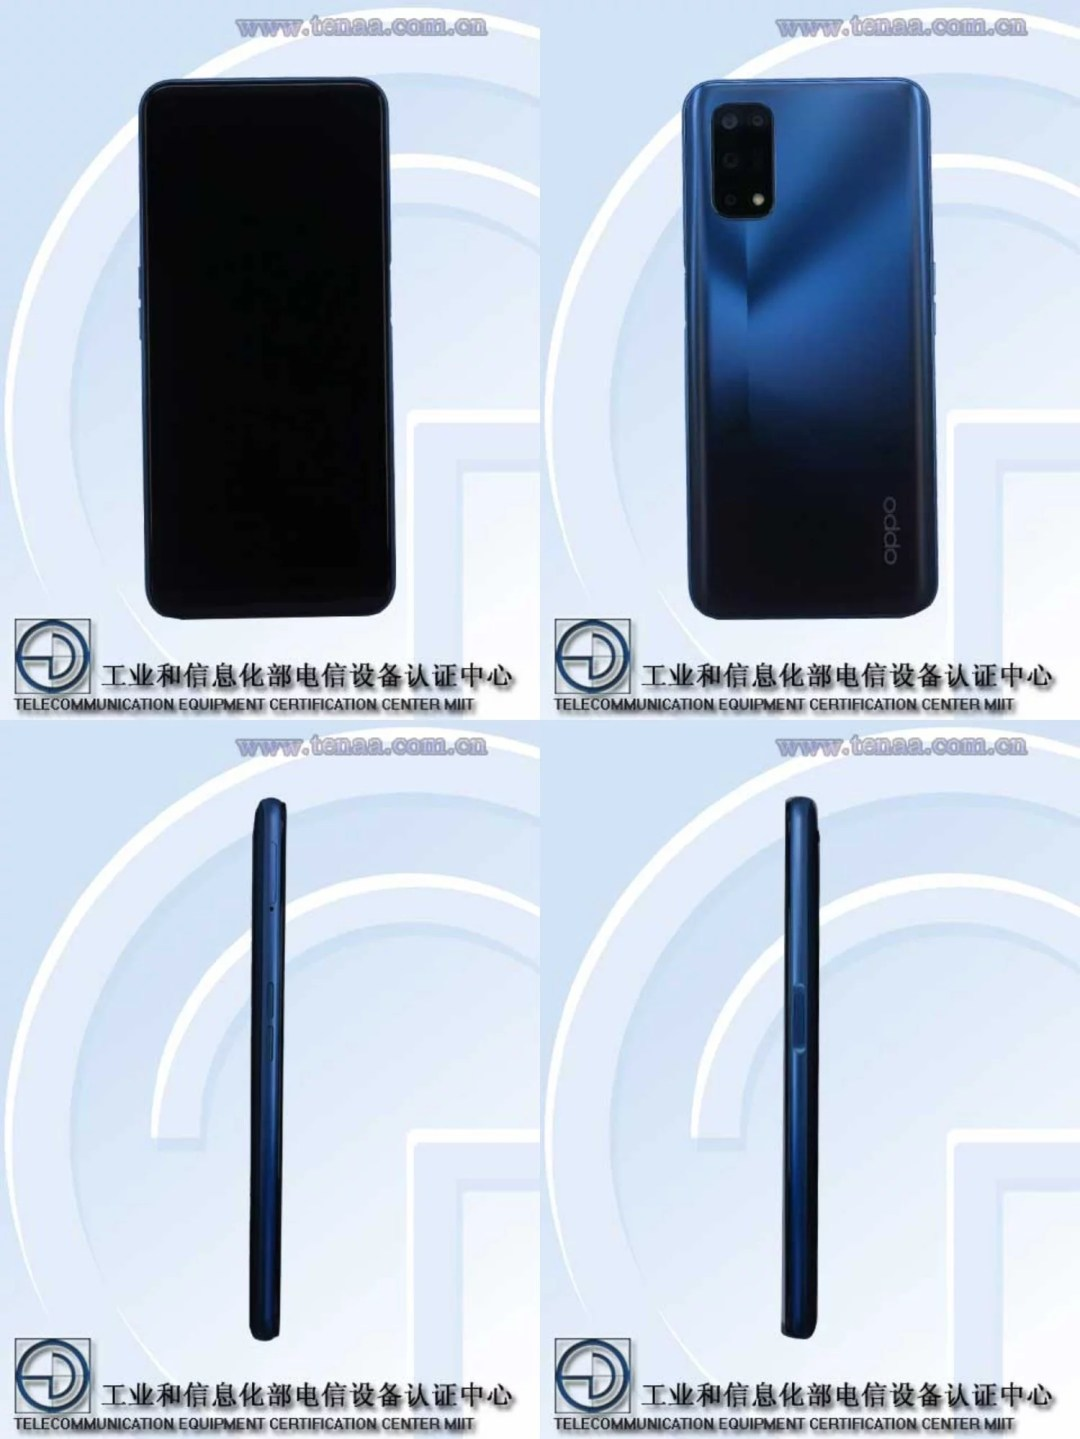 Oppo K7x has been spotted on Geekbench with Mediatek's Dimensity 720 processor and 8 Gigs of RAM. got a